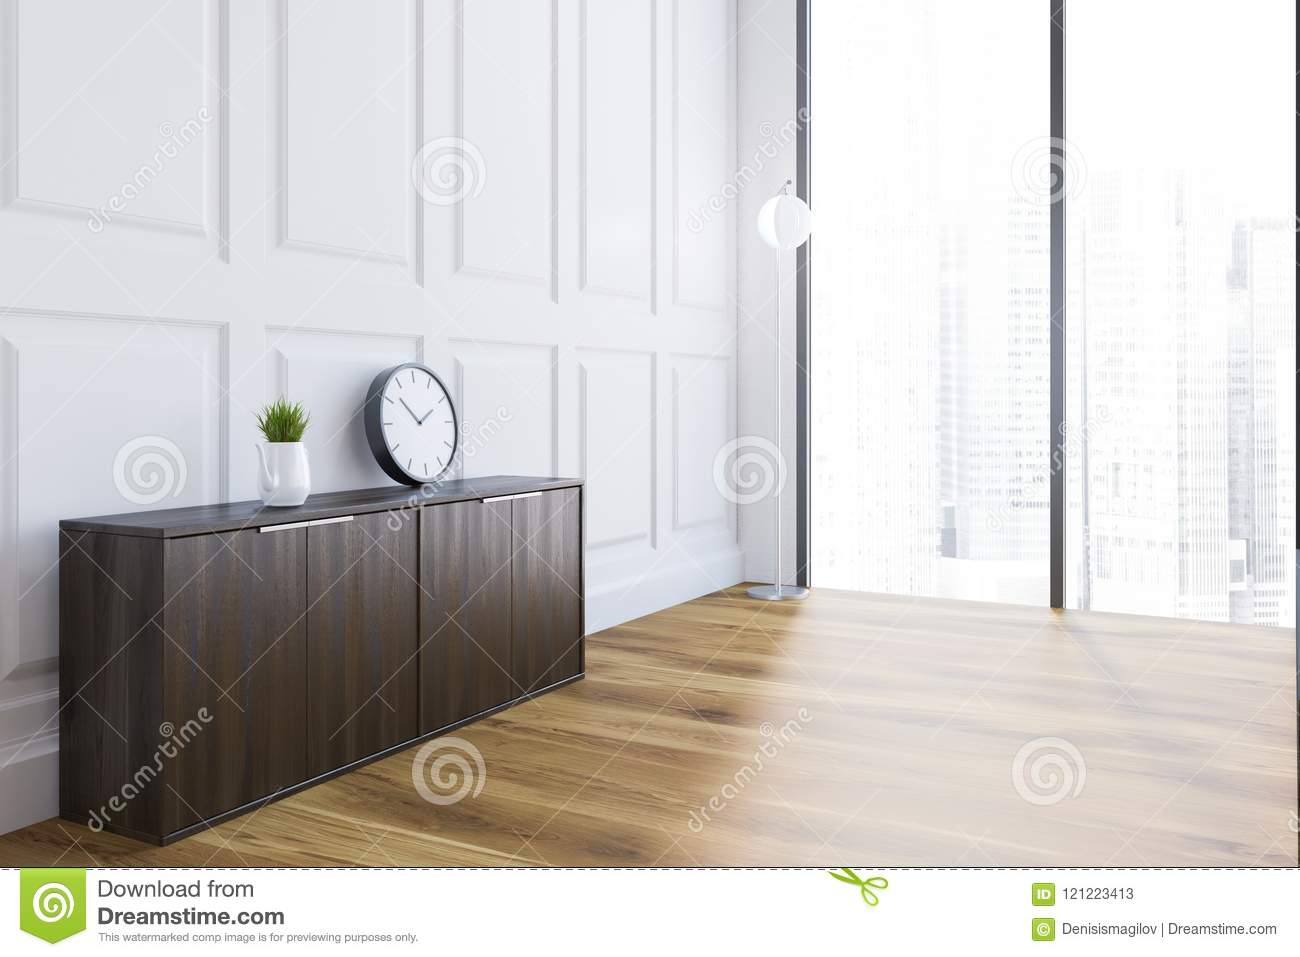 White Loft Living Room Interior With A Wooden Floor, A Dark Wooden Cabinet  With A Clock On It And A Panoramic Window. 3d Rendering Mock Up